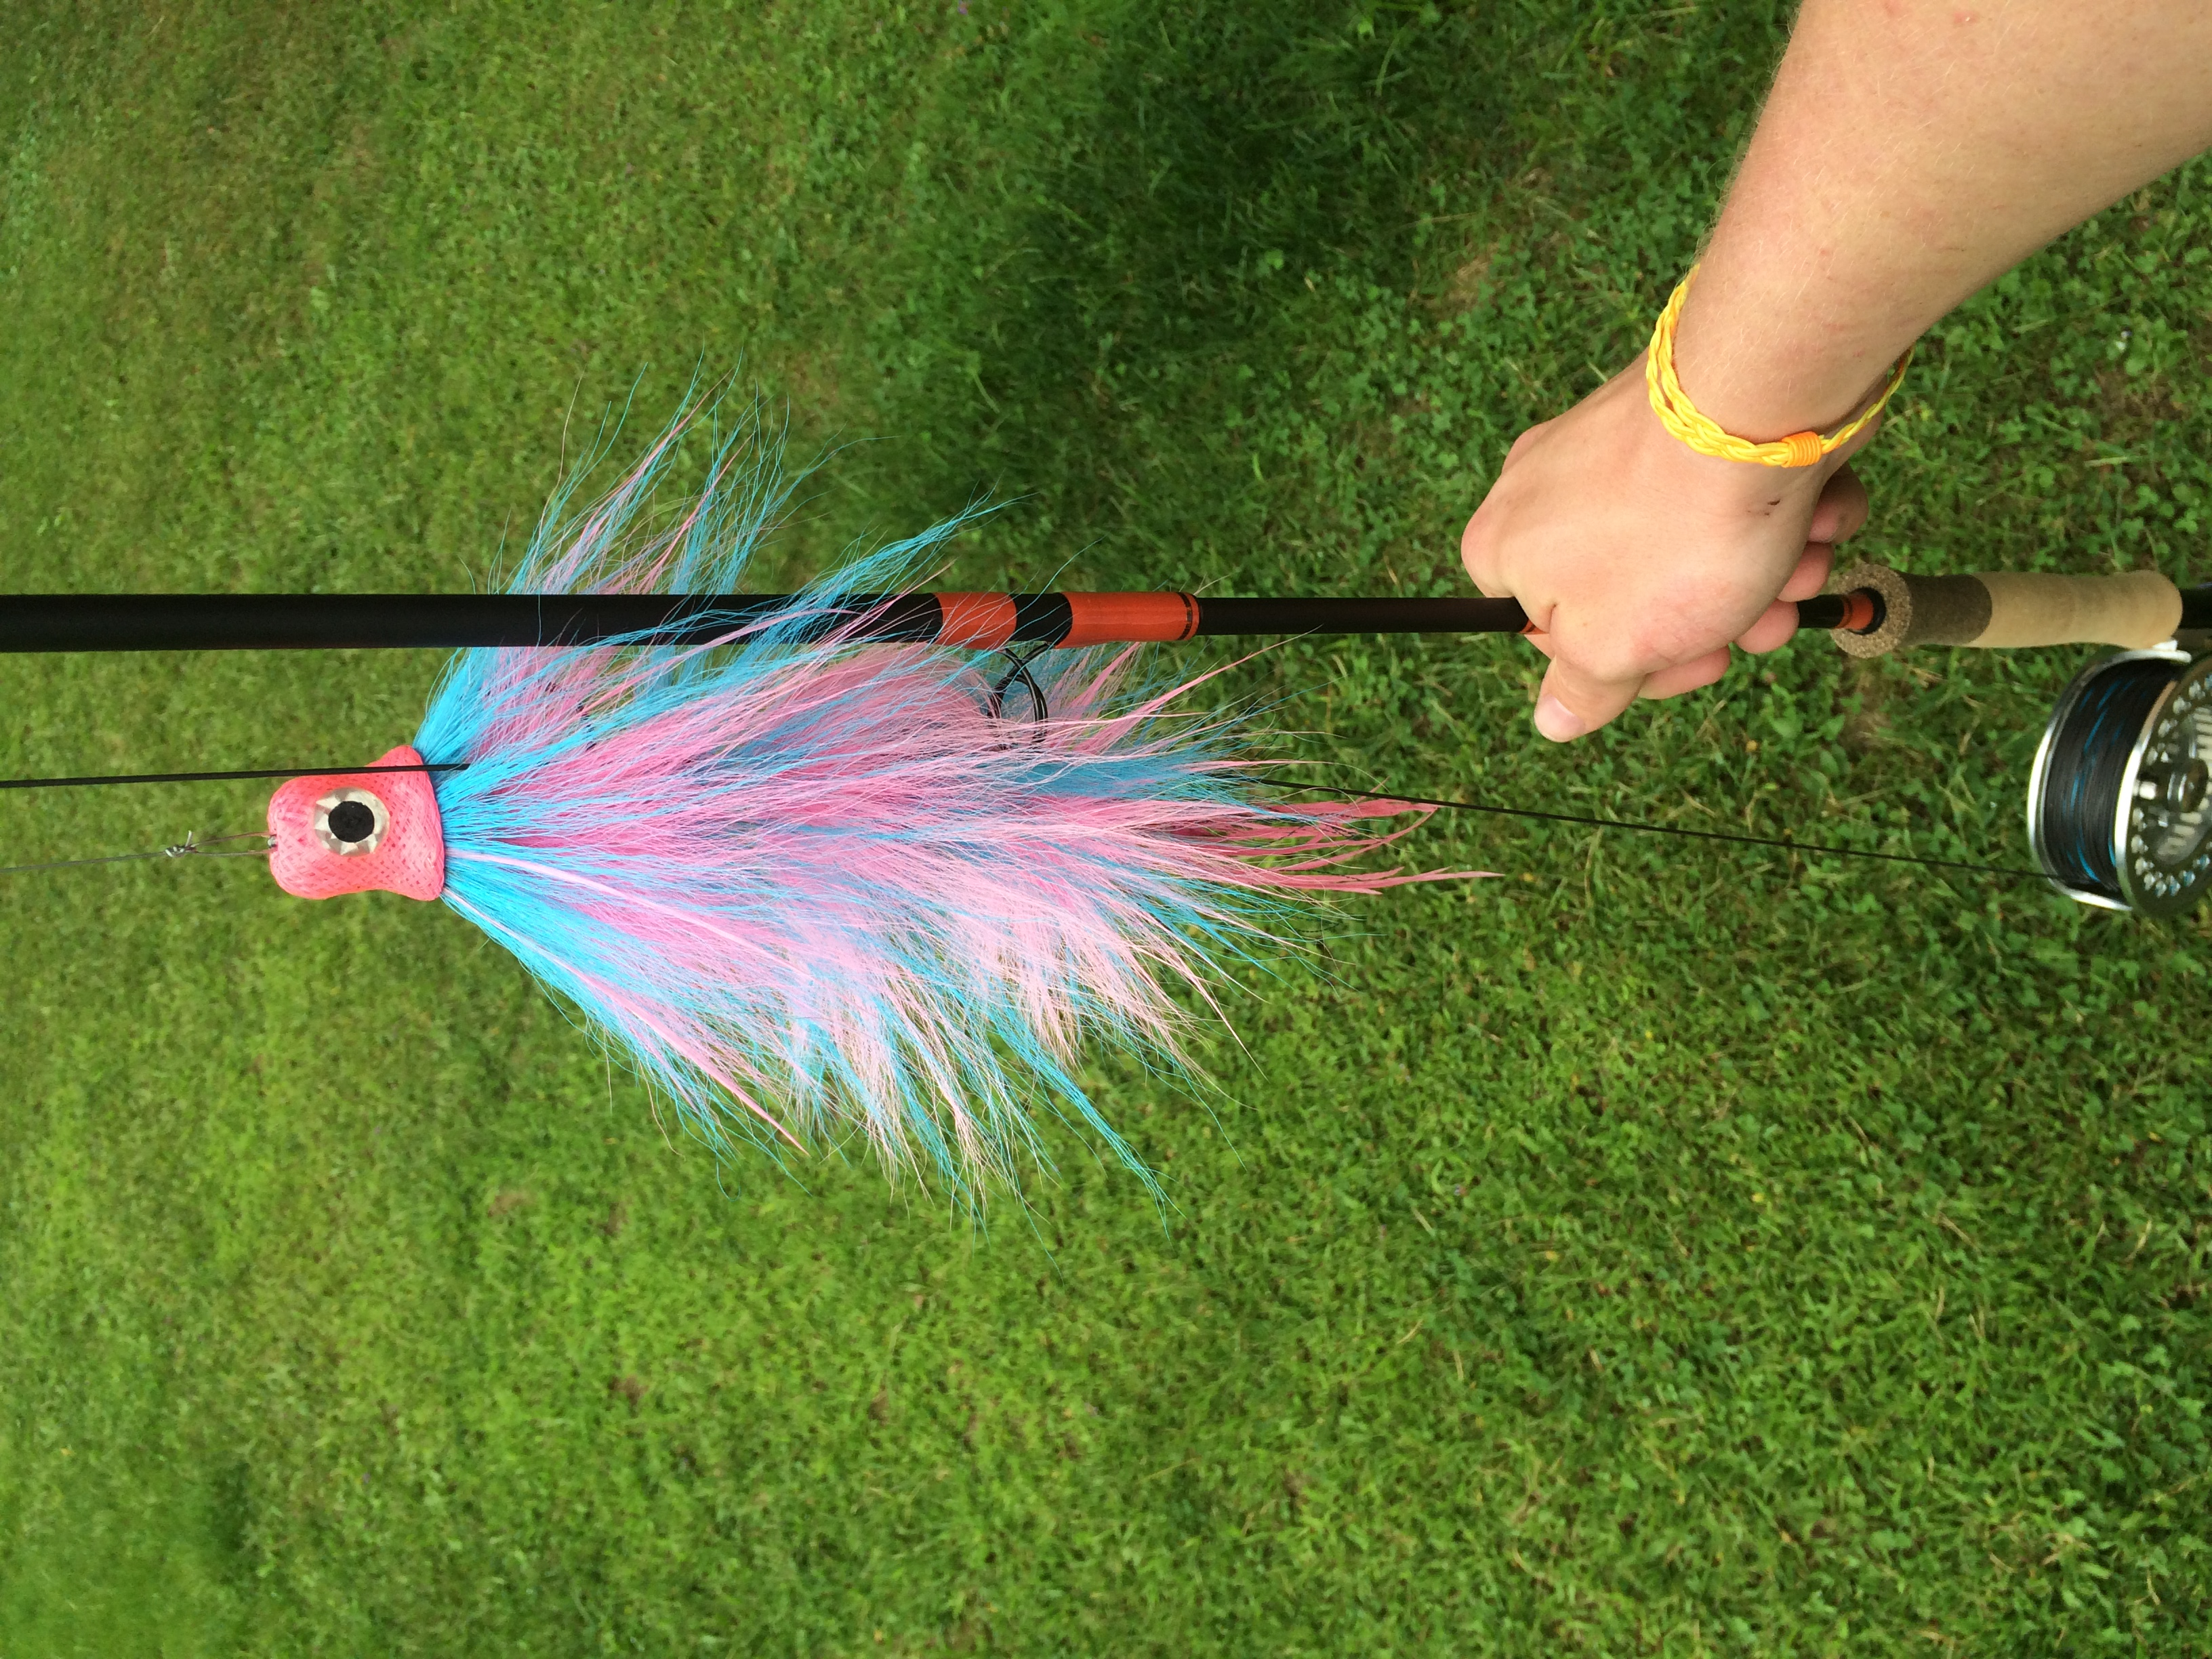 How fly fishing has changed siowfa15 science in our for Types of fly fishing flies